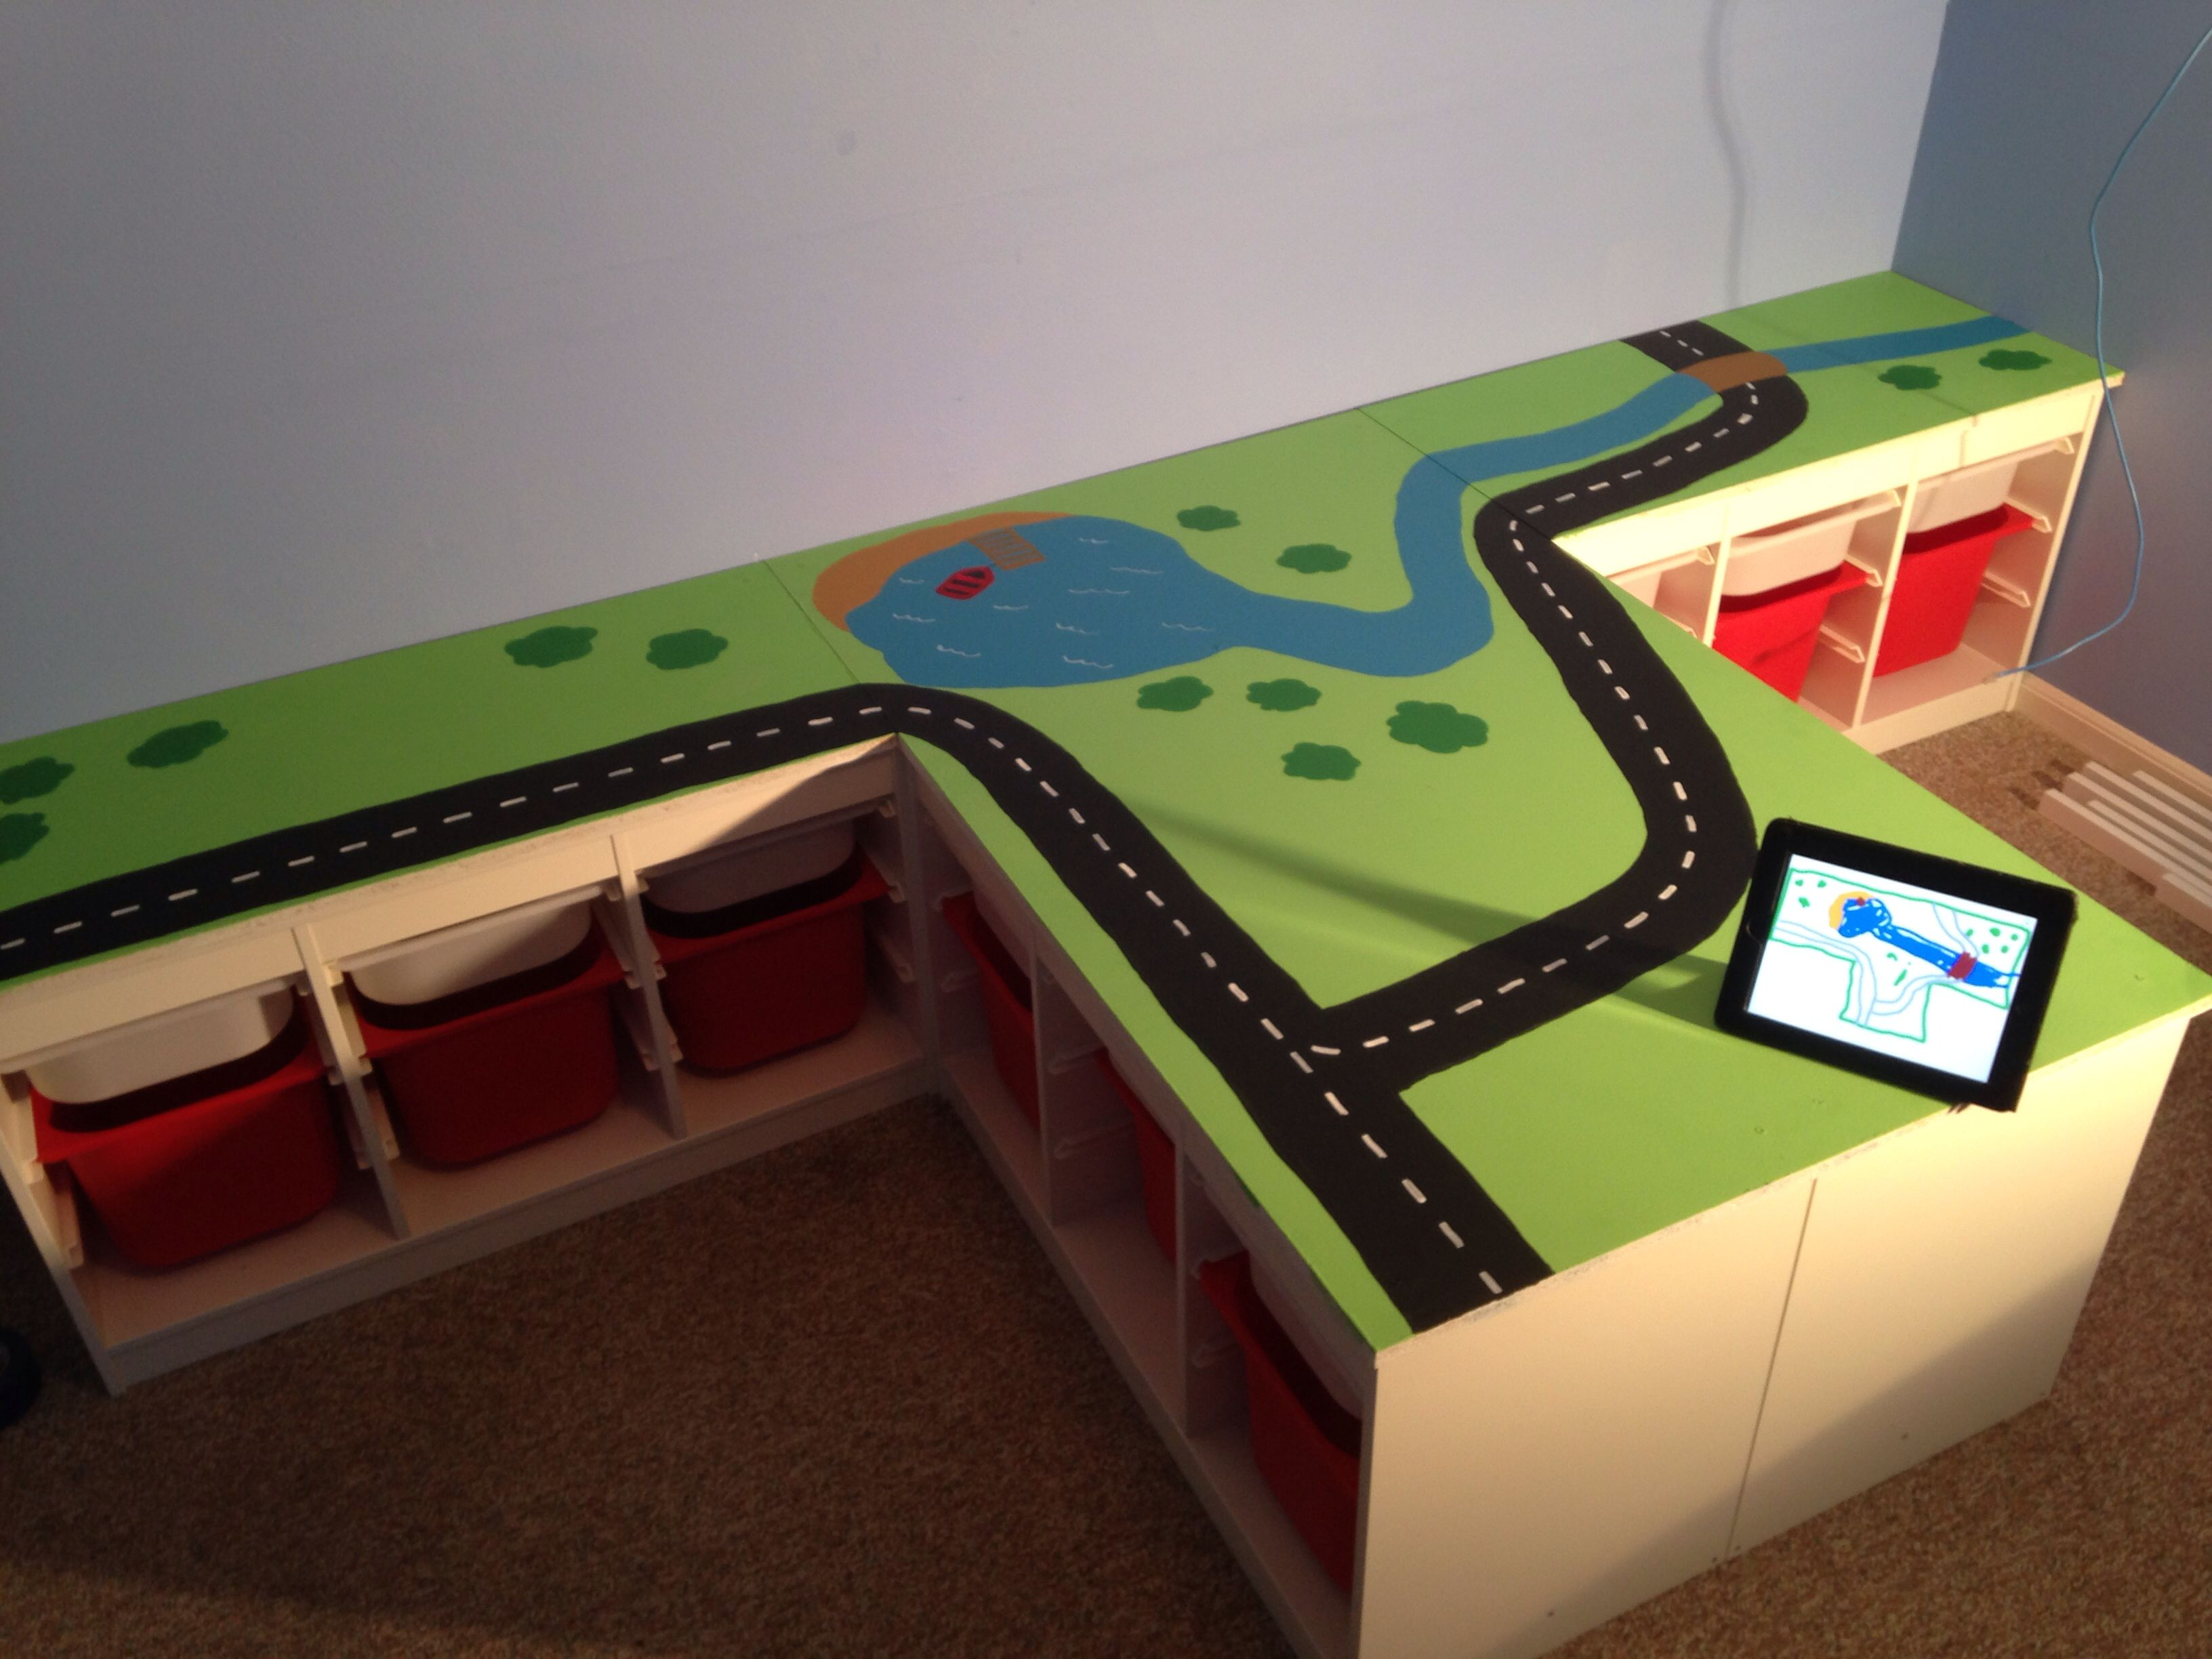 Custom train table with ikea shelves the ipad shows my son 39 s concept for - Customiser table ikea ...